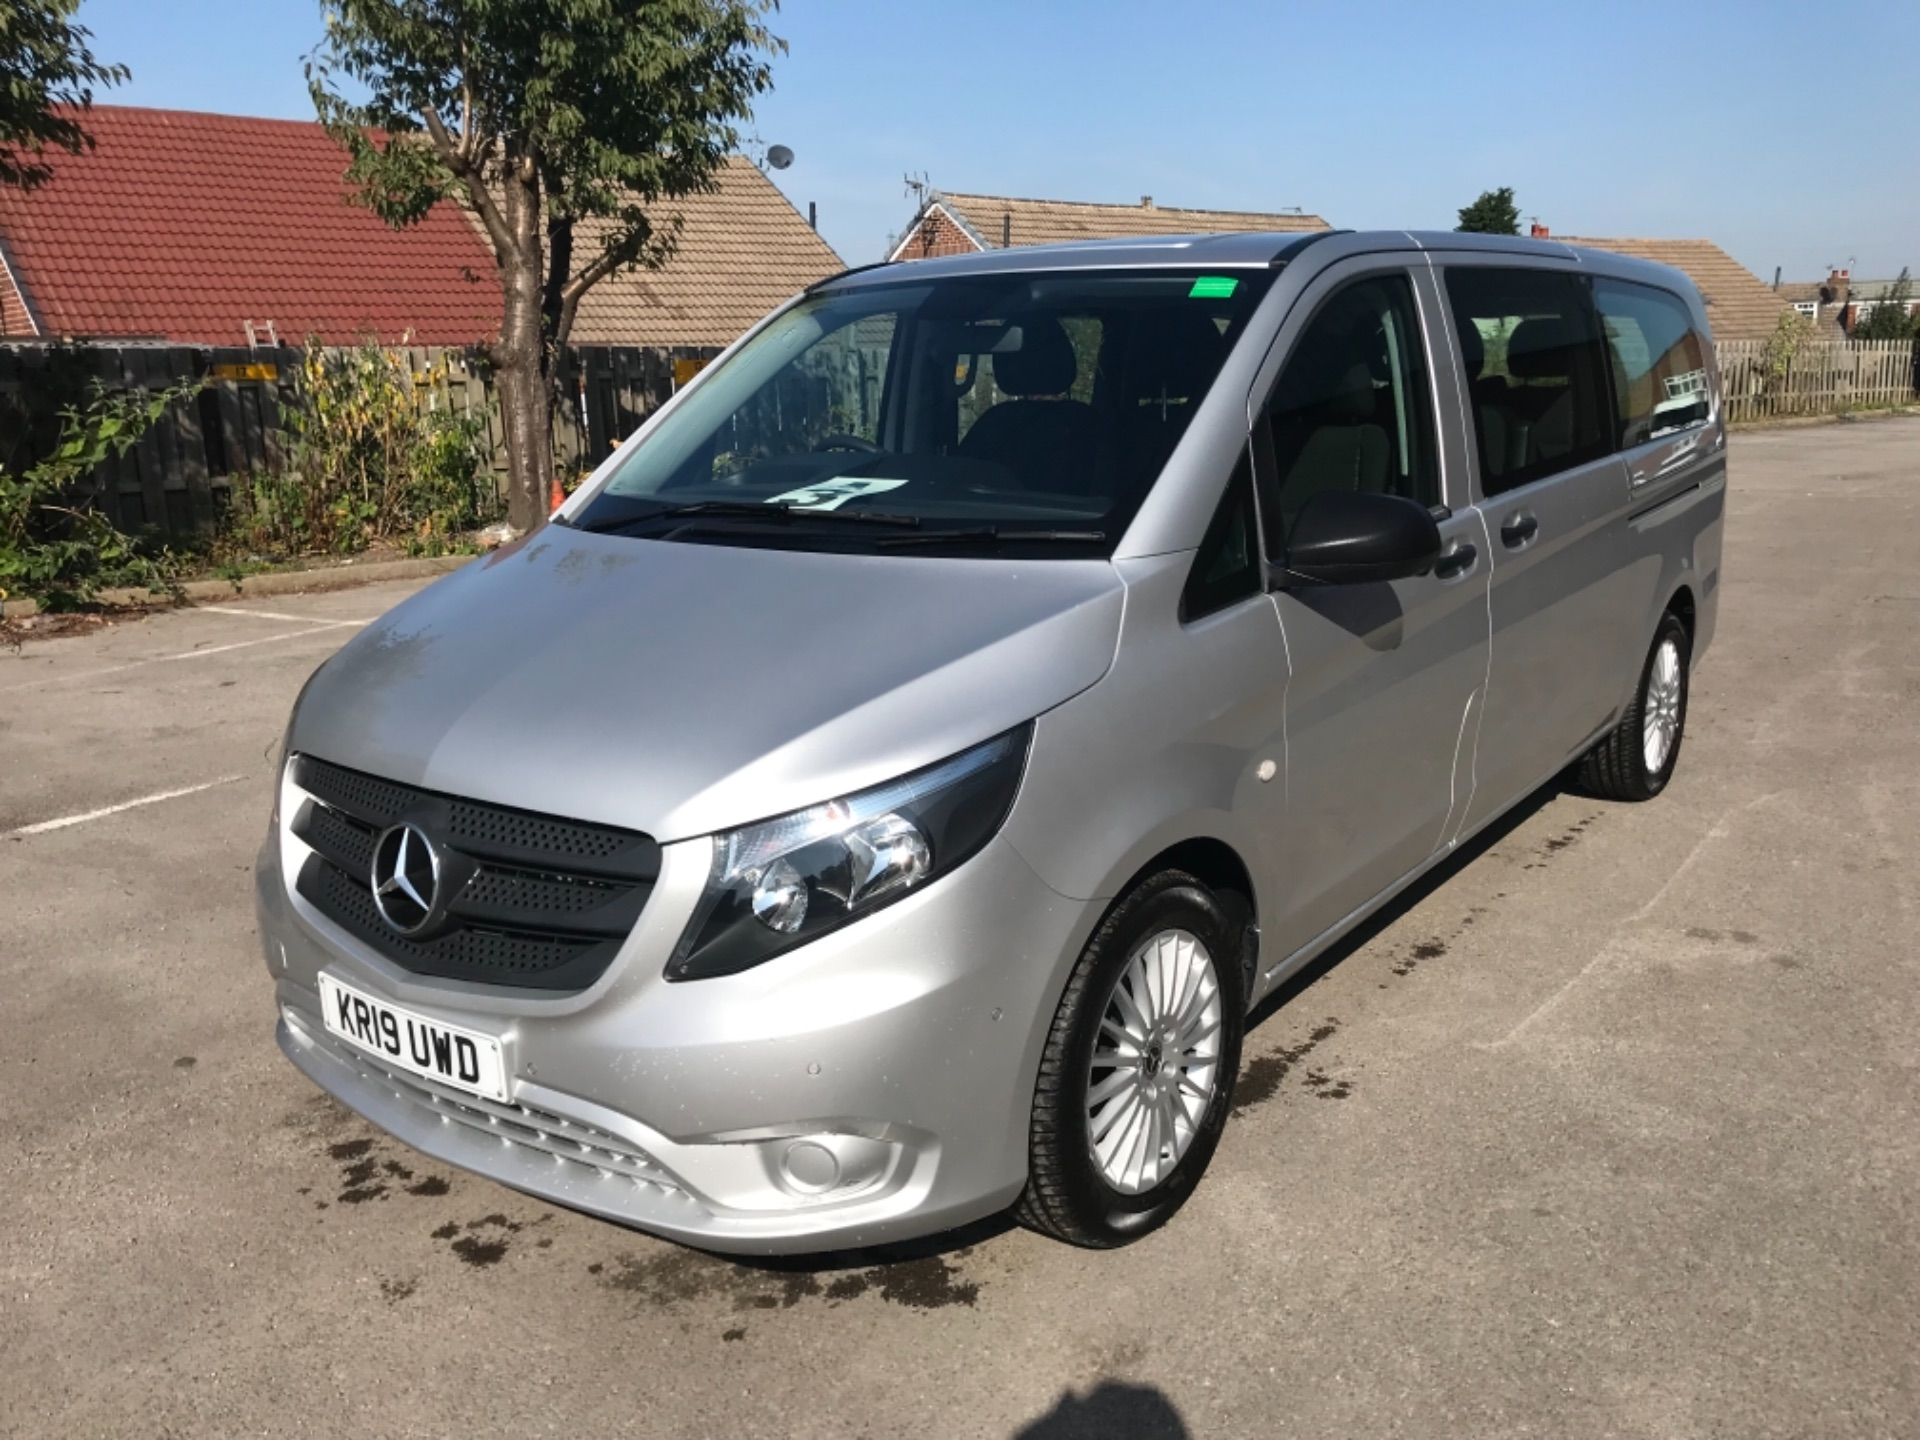 2019 Mercedes-Benz Vito 119 Cdi Select 8-Seater 7G-Tronic (KR19UWD) Image 3